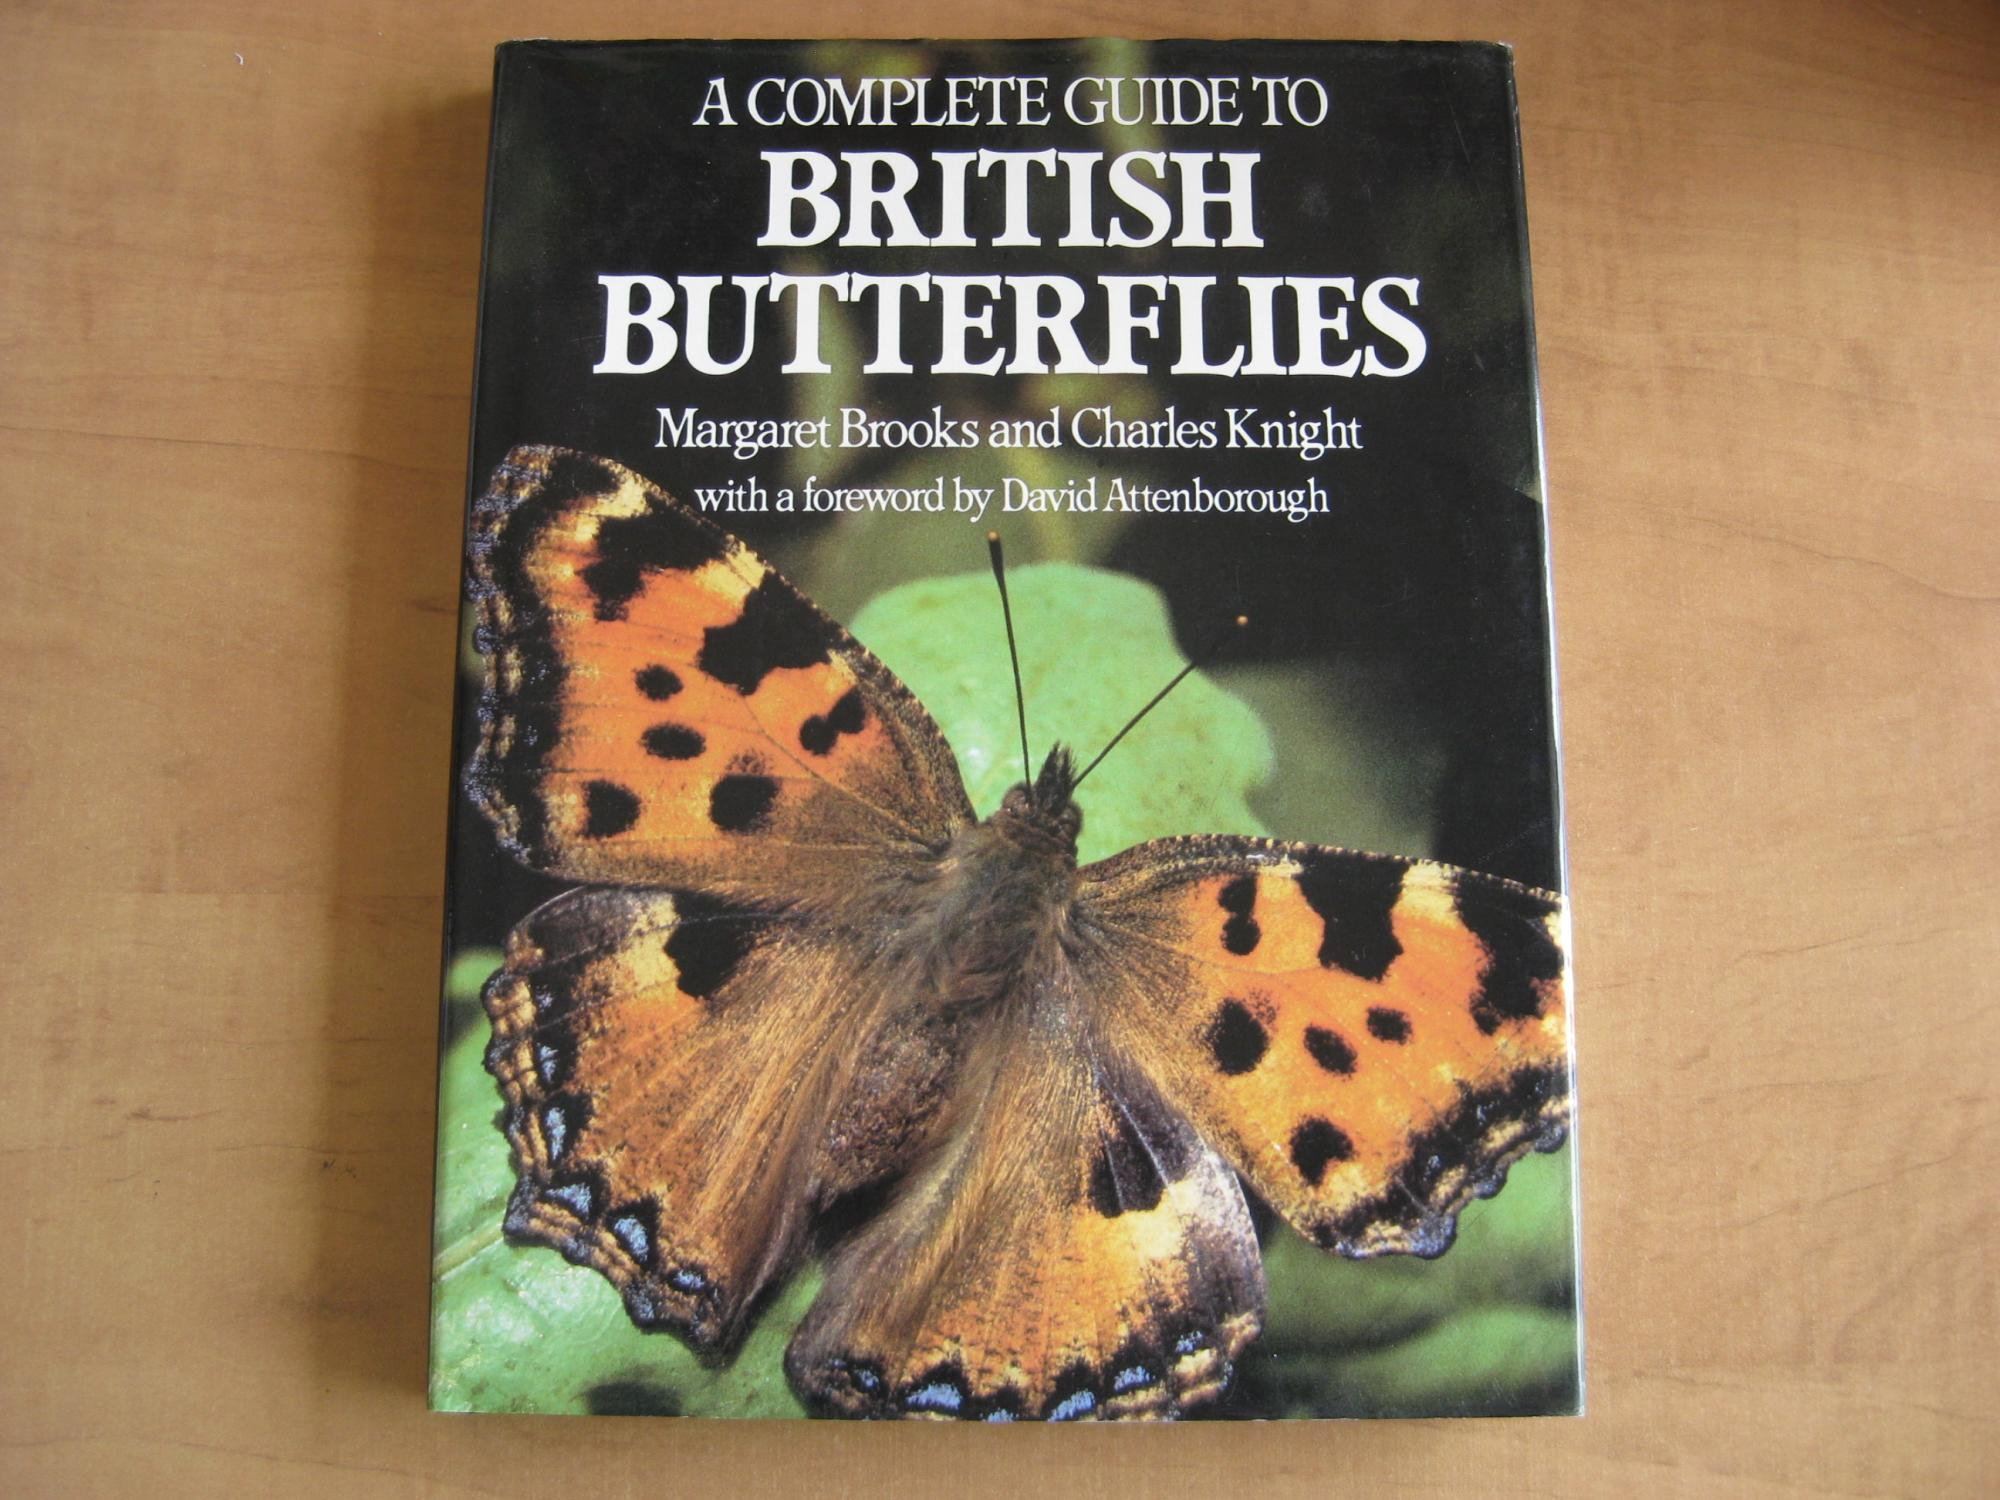 Margaret Brooks (Ph.C.),  Charles Knight - A Complete Guide to British Butterflies